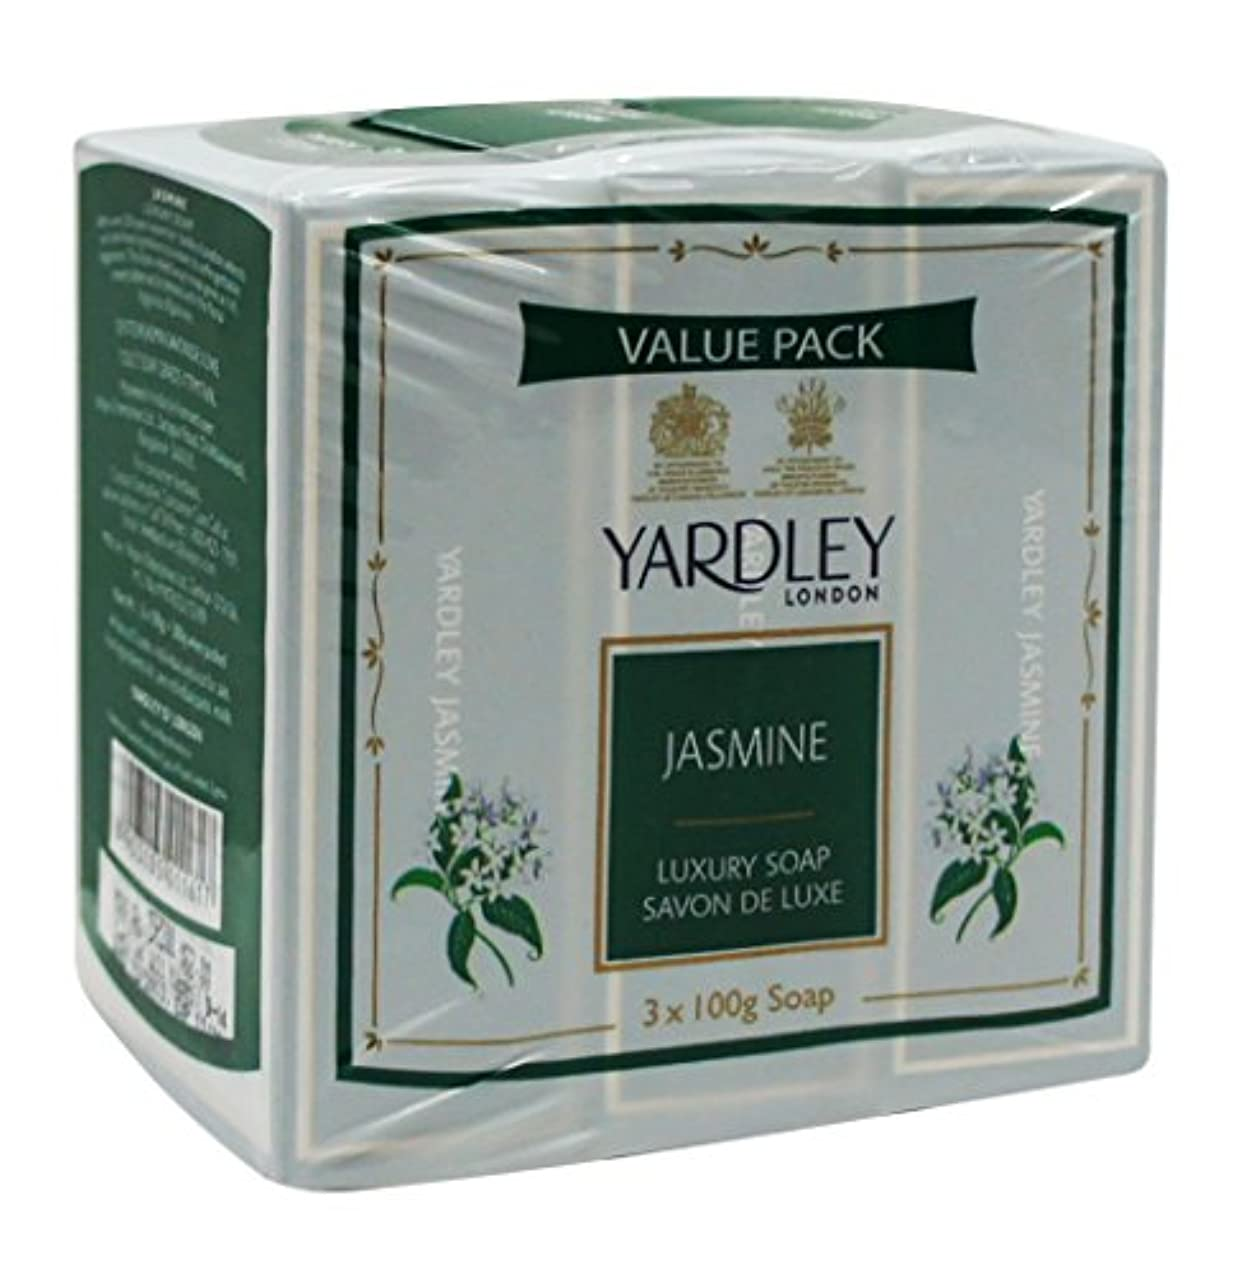 冒険漏斗悪意Yardley London Value Pack Luxury Soap 3x100g Jasmine by Yardley